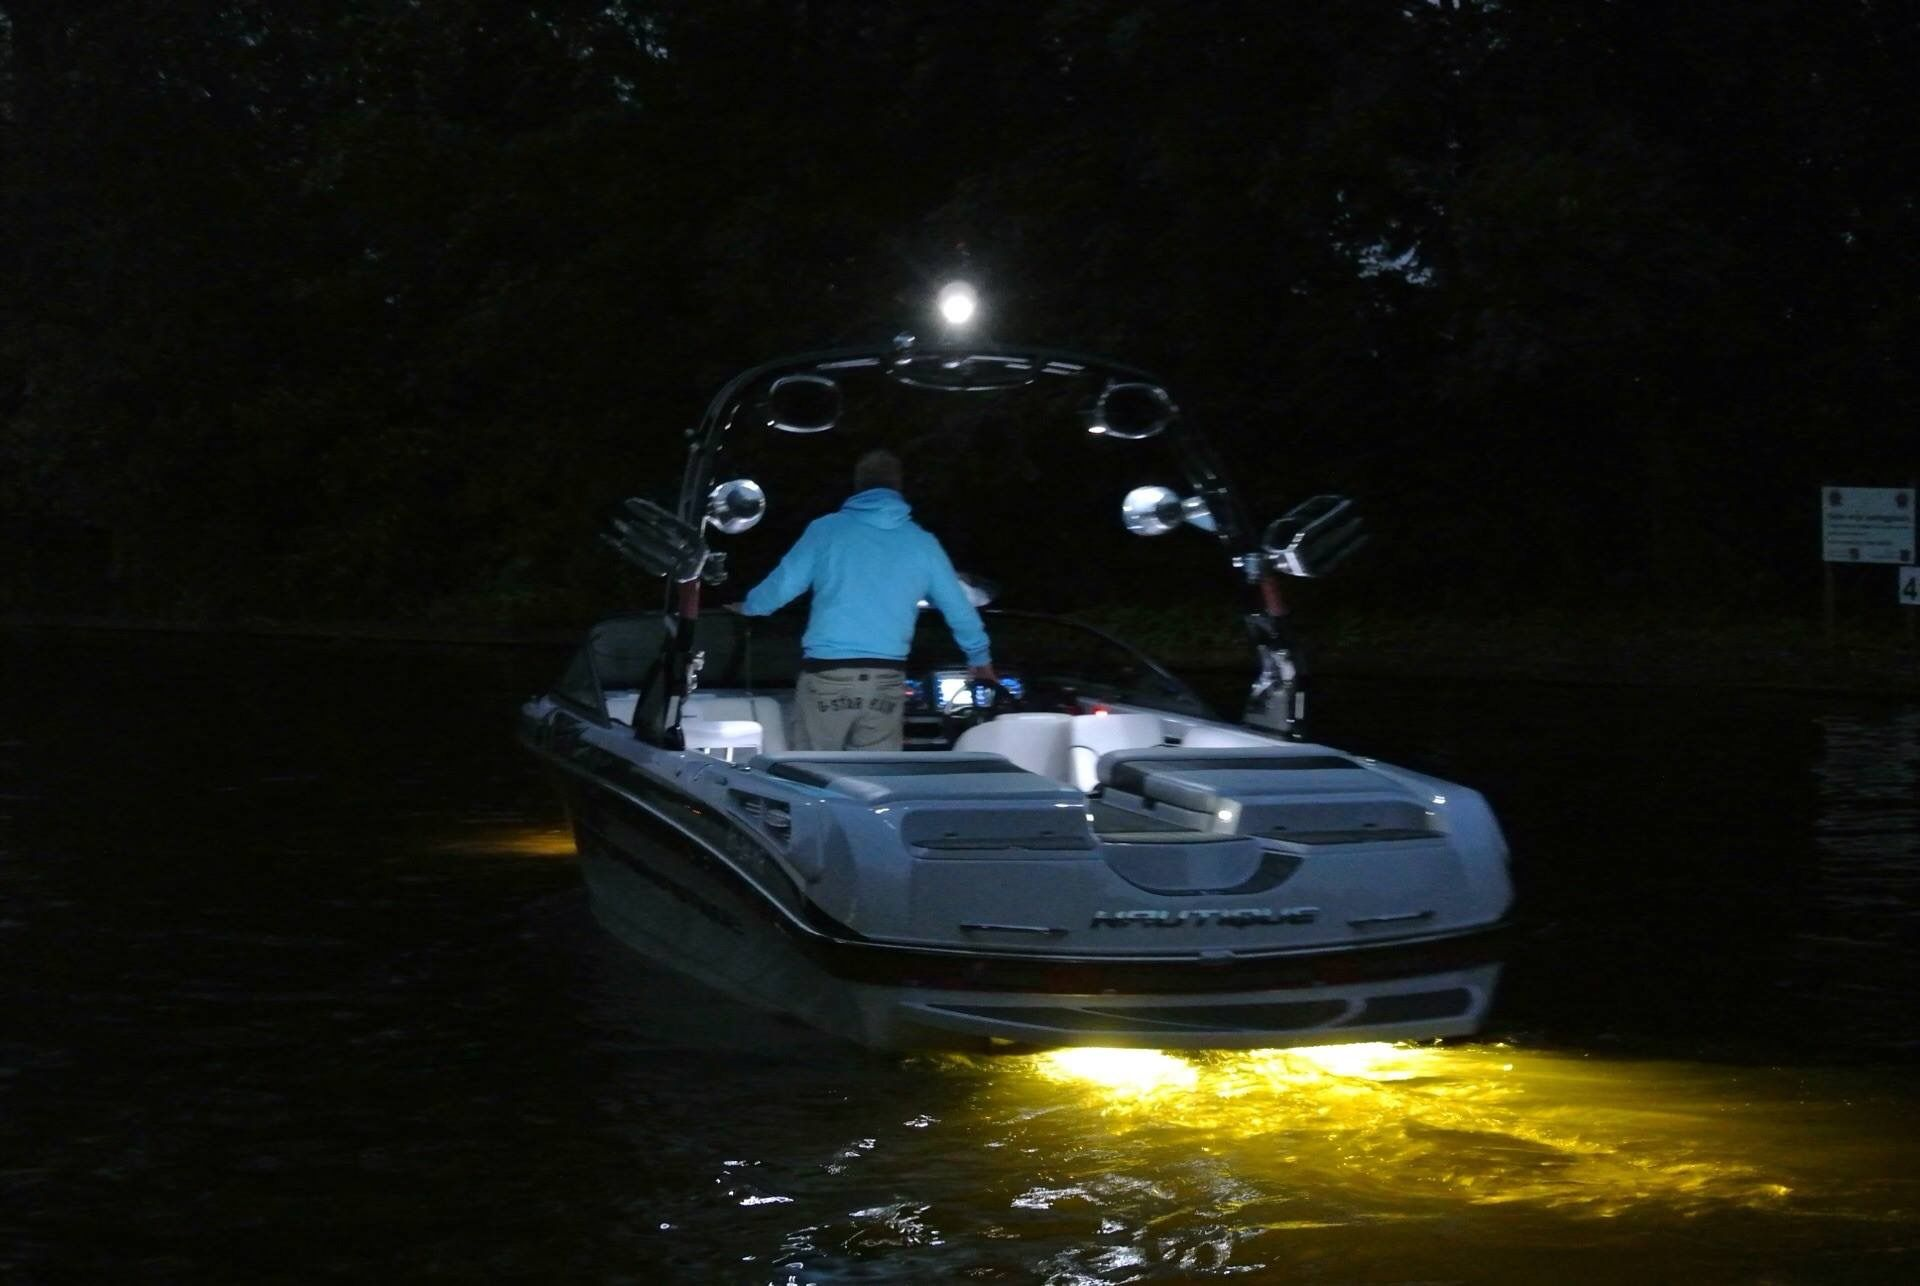 Super air nautique 230 Ski boats, Boat, Skiing